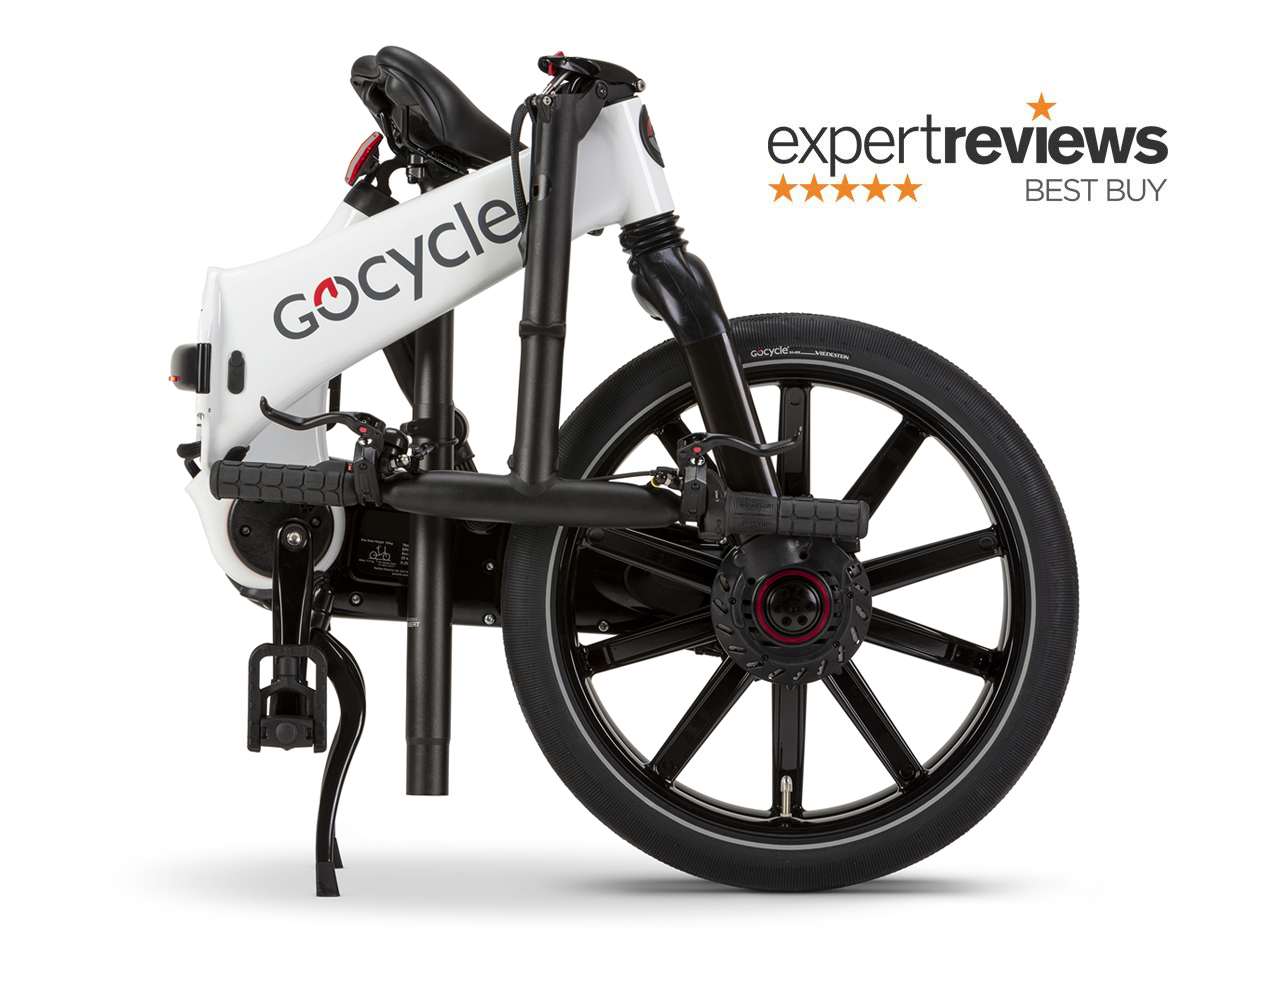 The portable docking station makes storing and folding up the Gocycle electric bike easy.